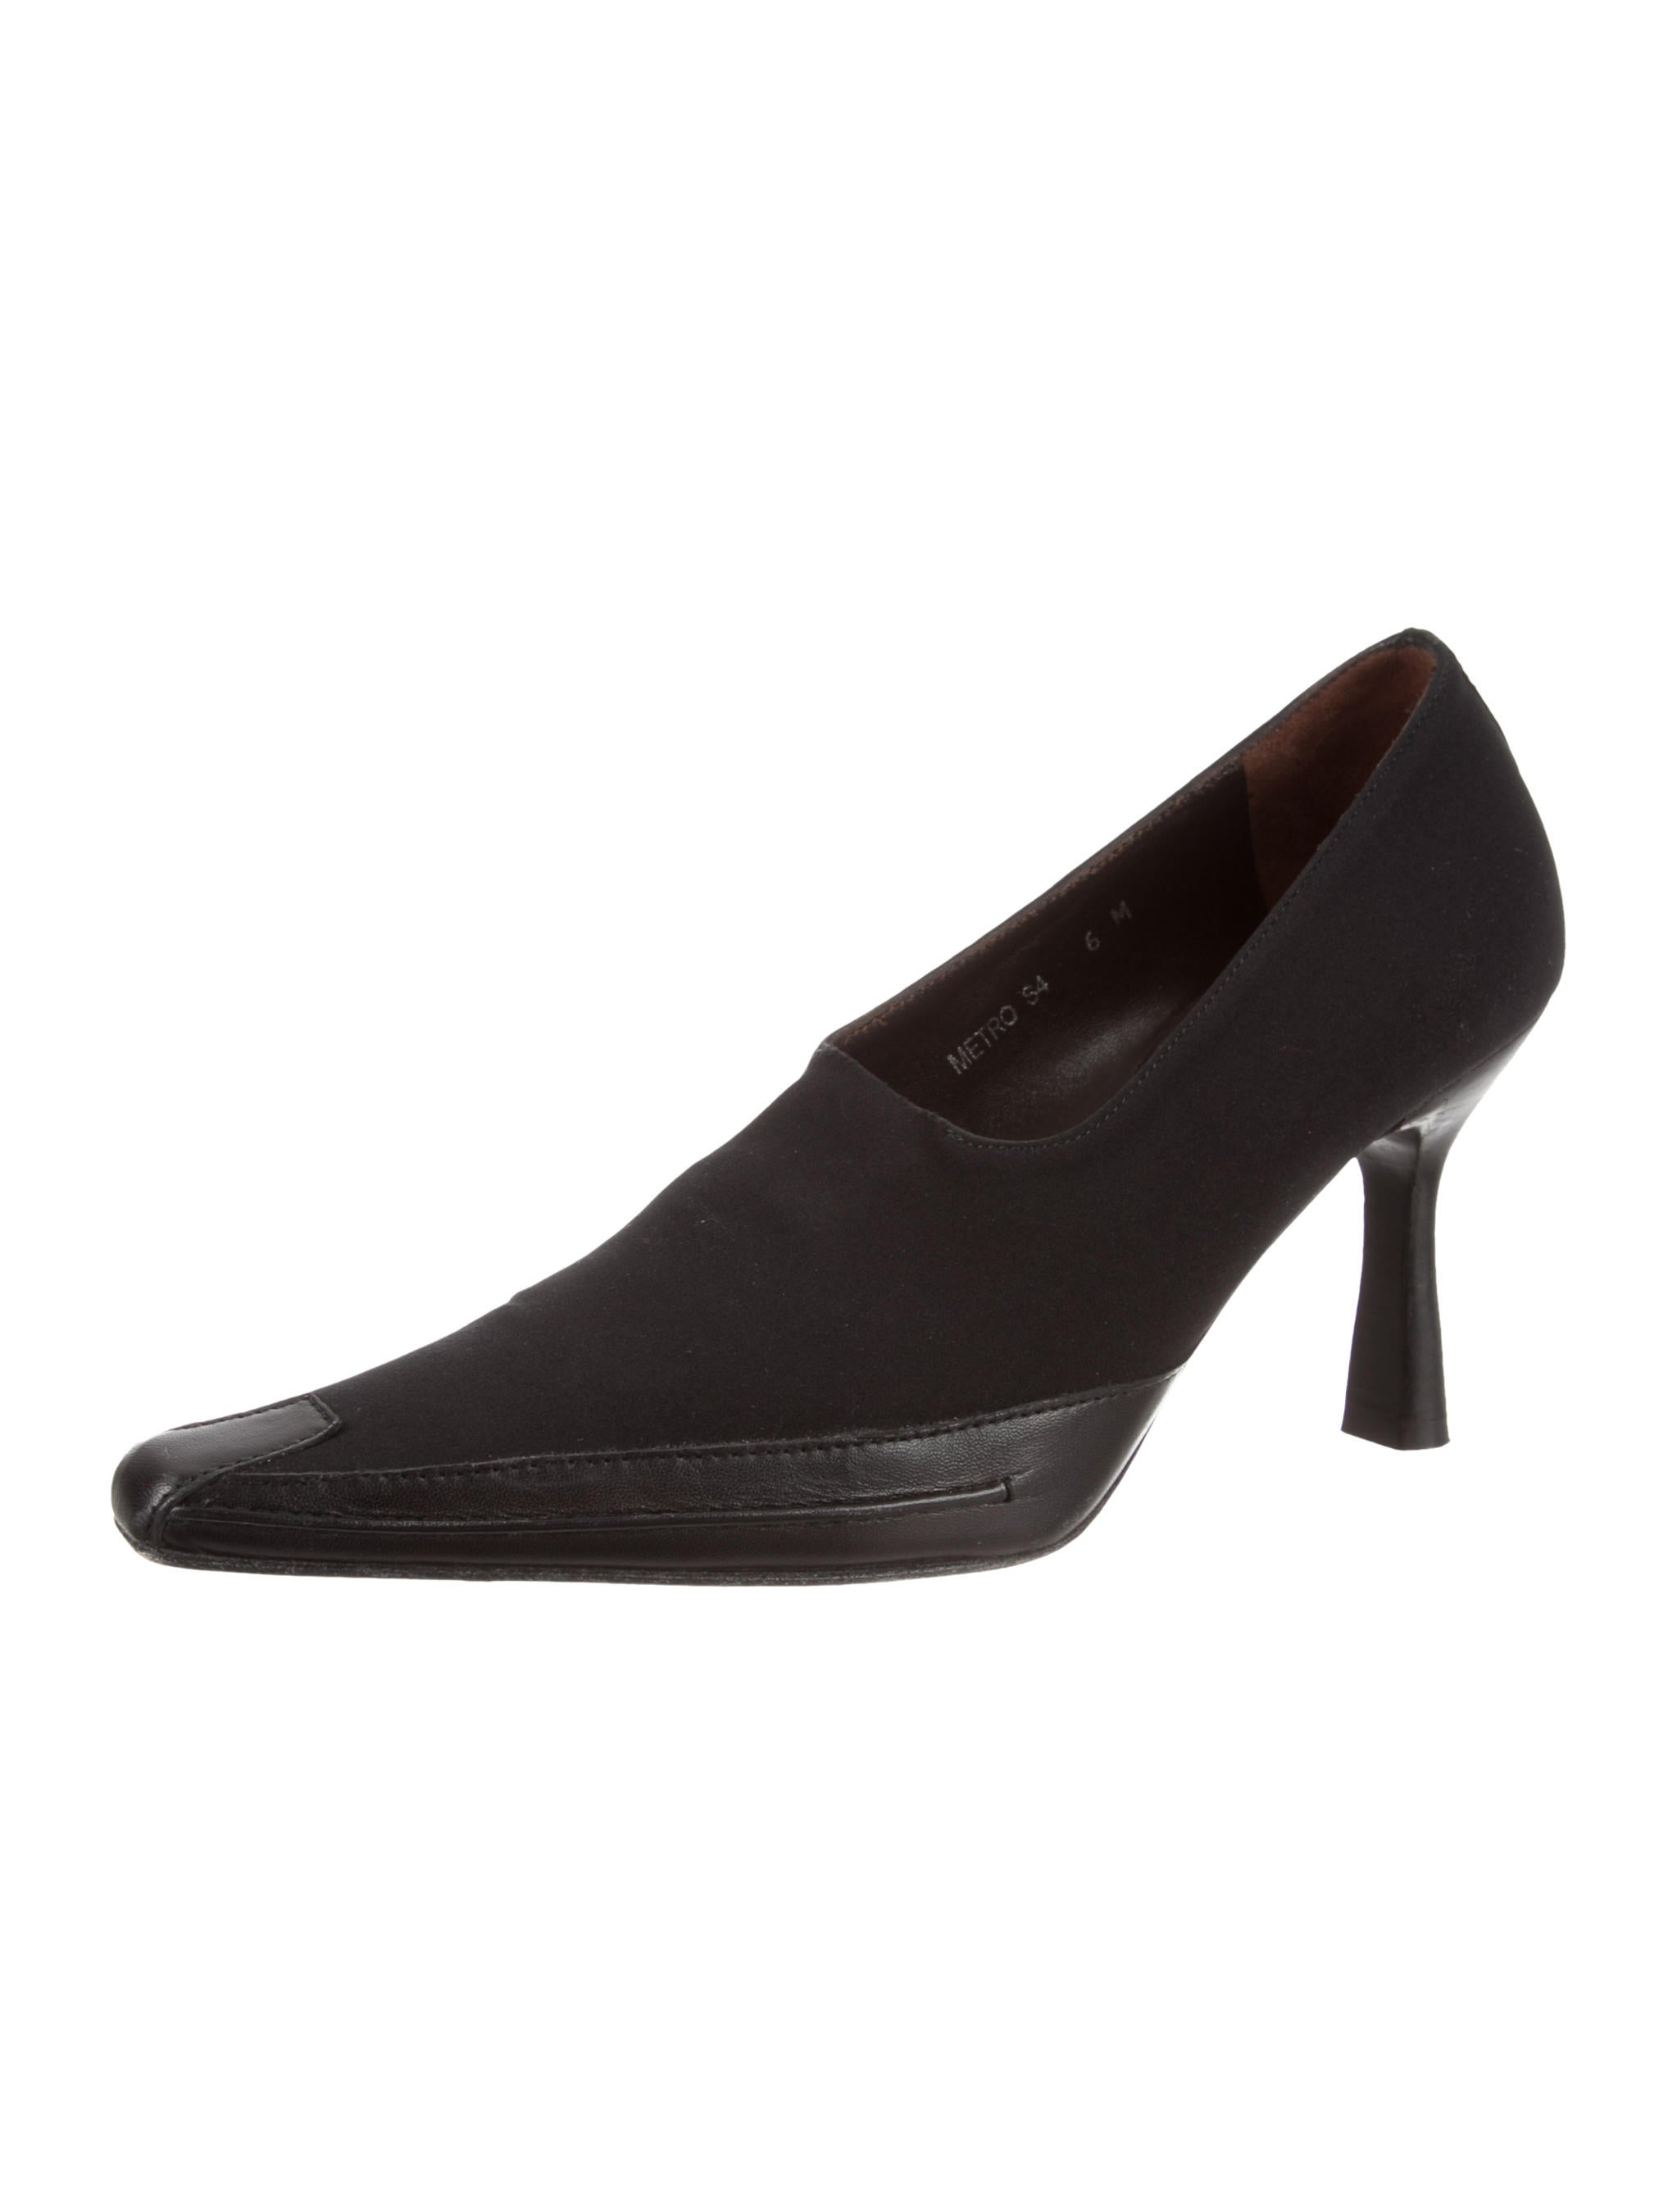 buy cheap clearance store free shipping footlocker pictures Donald J Pliner Woven Square-Toe Pumps nRKleLX